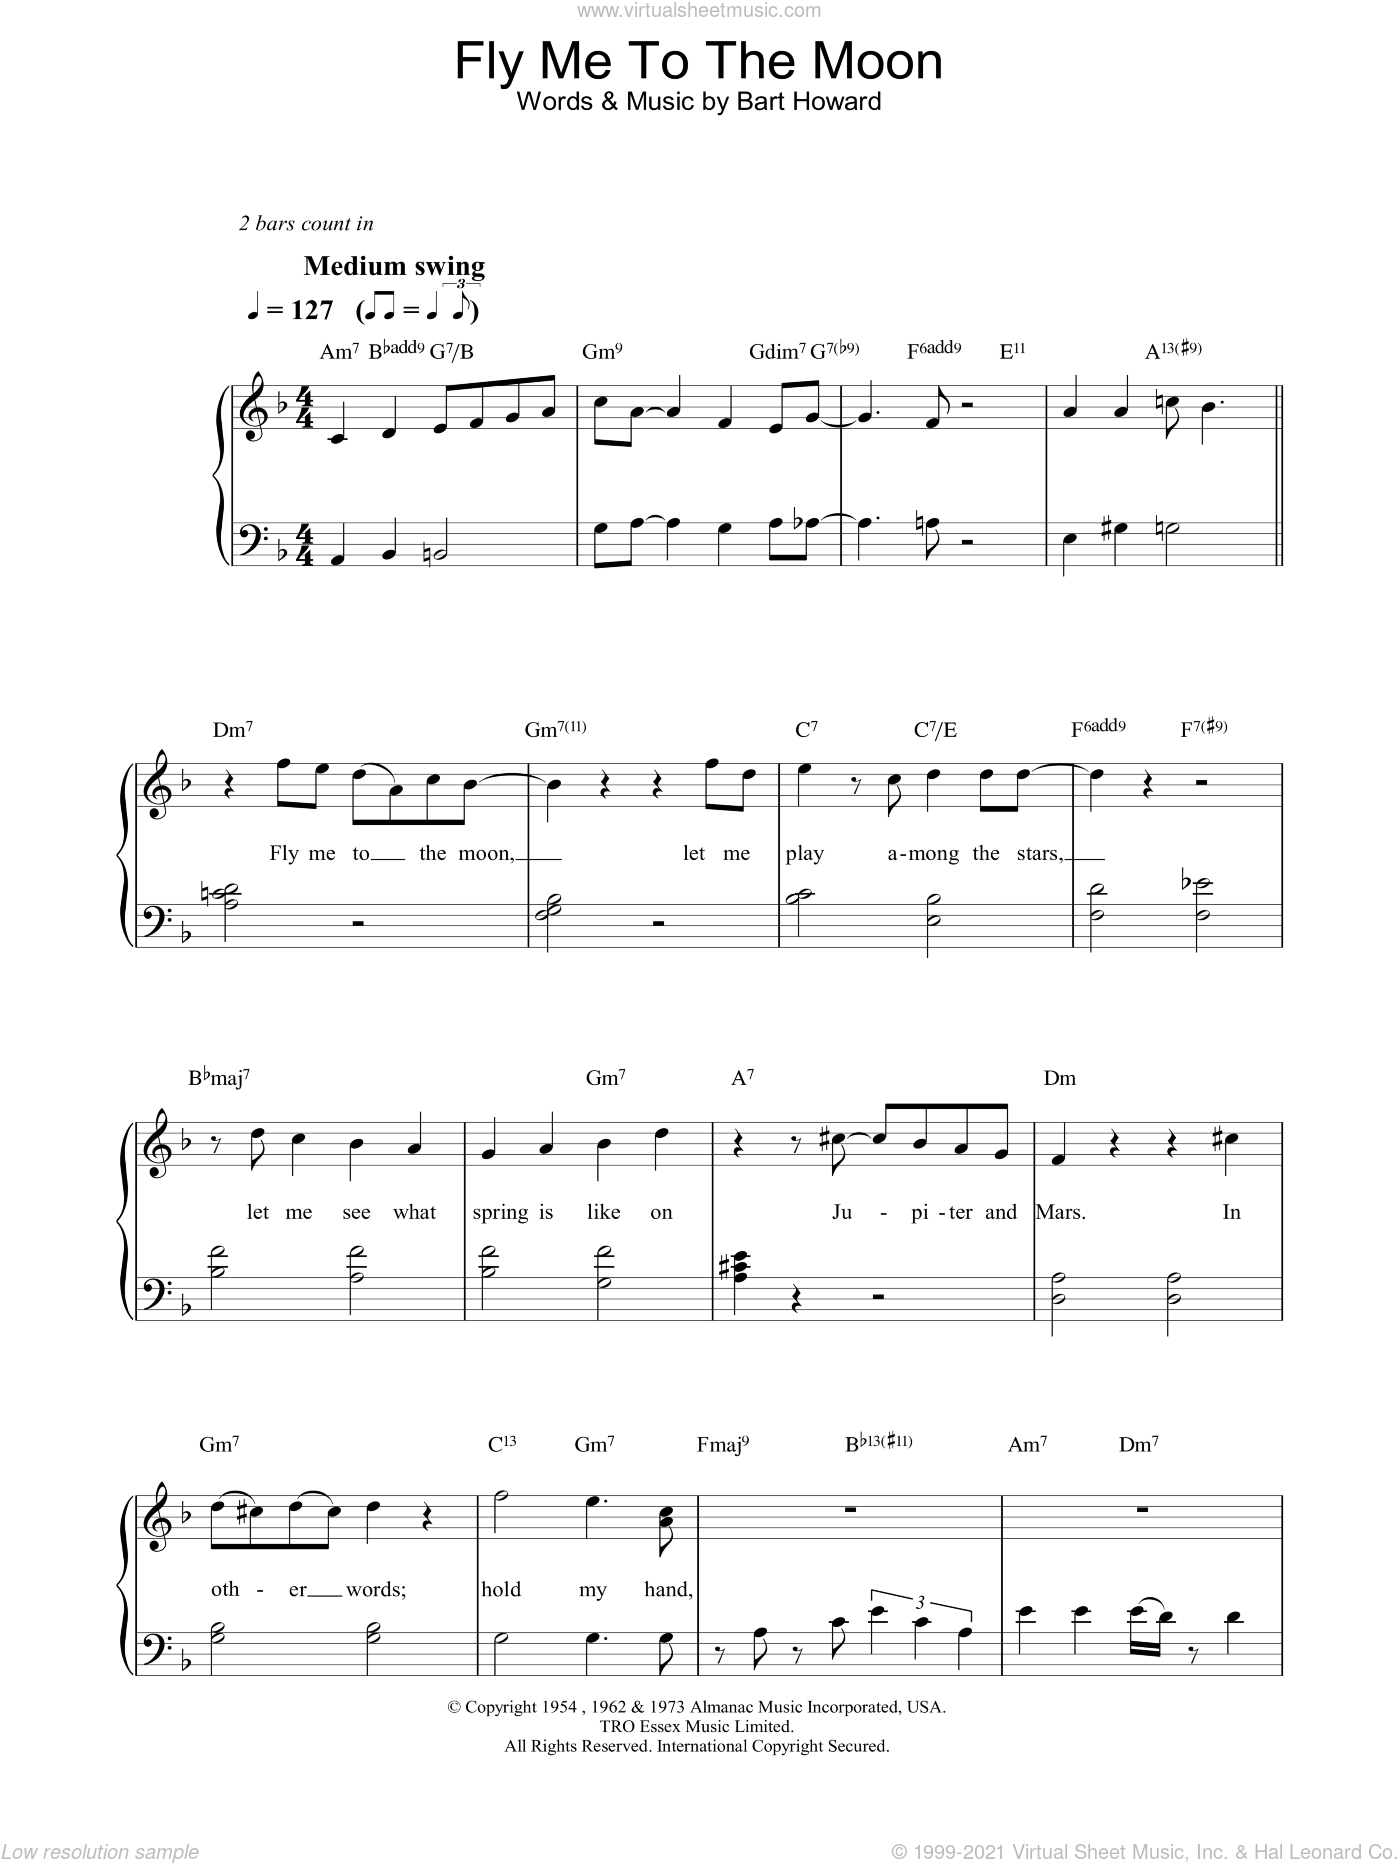 Fly Me To The Moon (In Other Words) sheet music for voice, piano or guitar by Bart Howard, Diana Krall and Frank Sinatra. Score Image Preview.